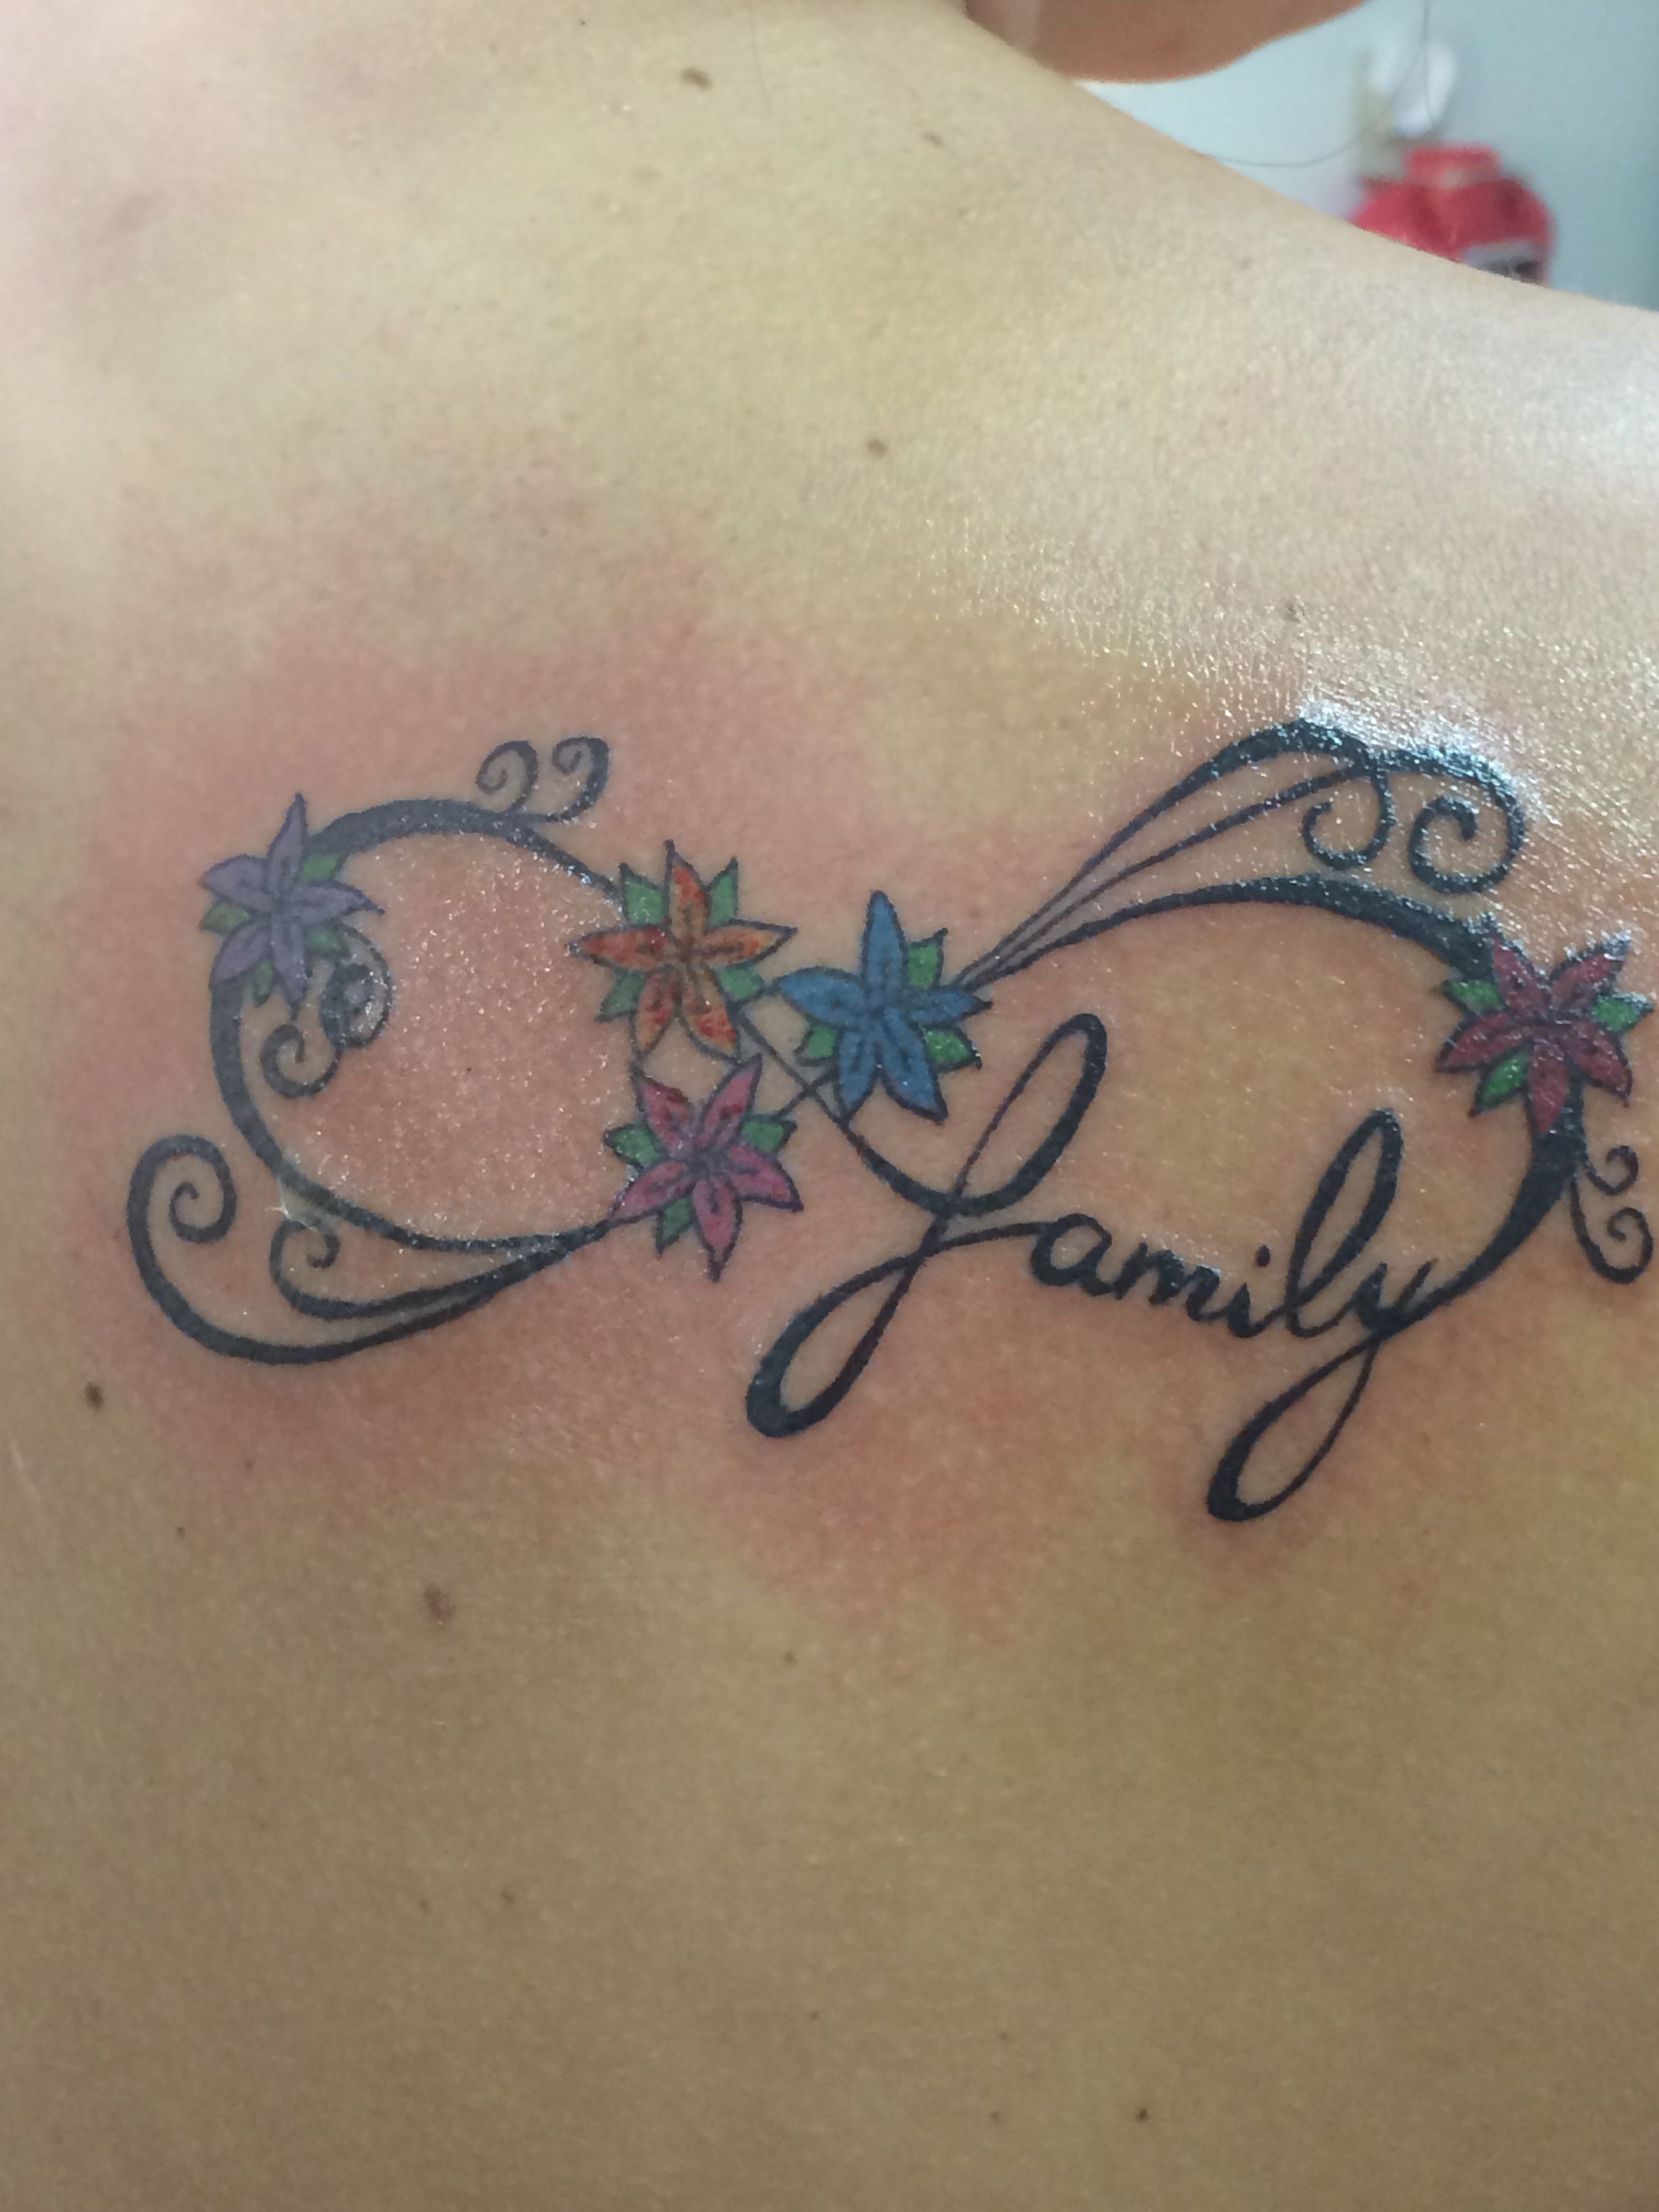 Intimidating infinity tattoo designs staining a tattoo is intimidating infinity tattoo designs staining a tattoo is followed from 18th century infinity symbol means endless the infinity symbol has a r biocorpaavc Gallery